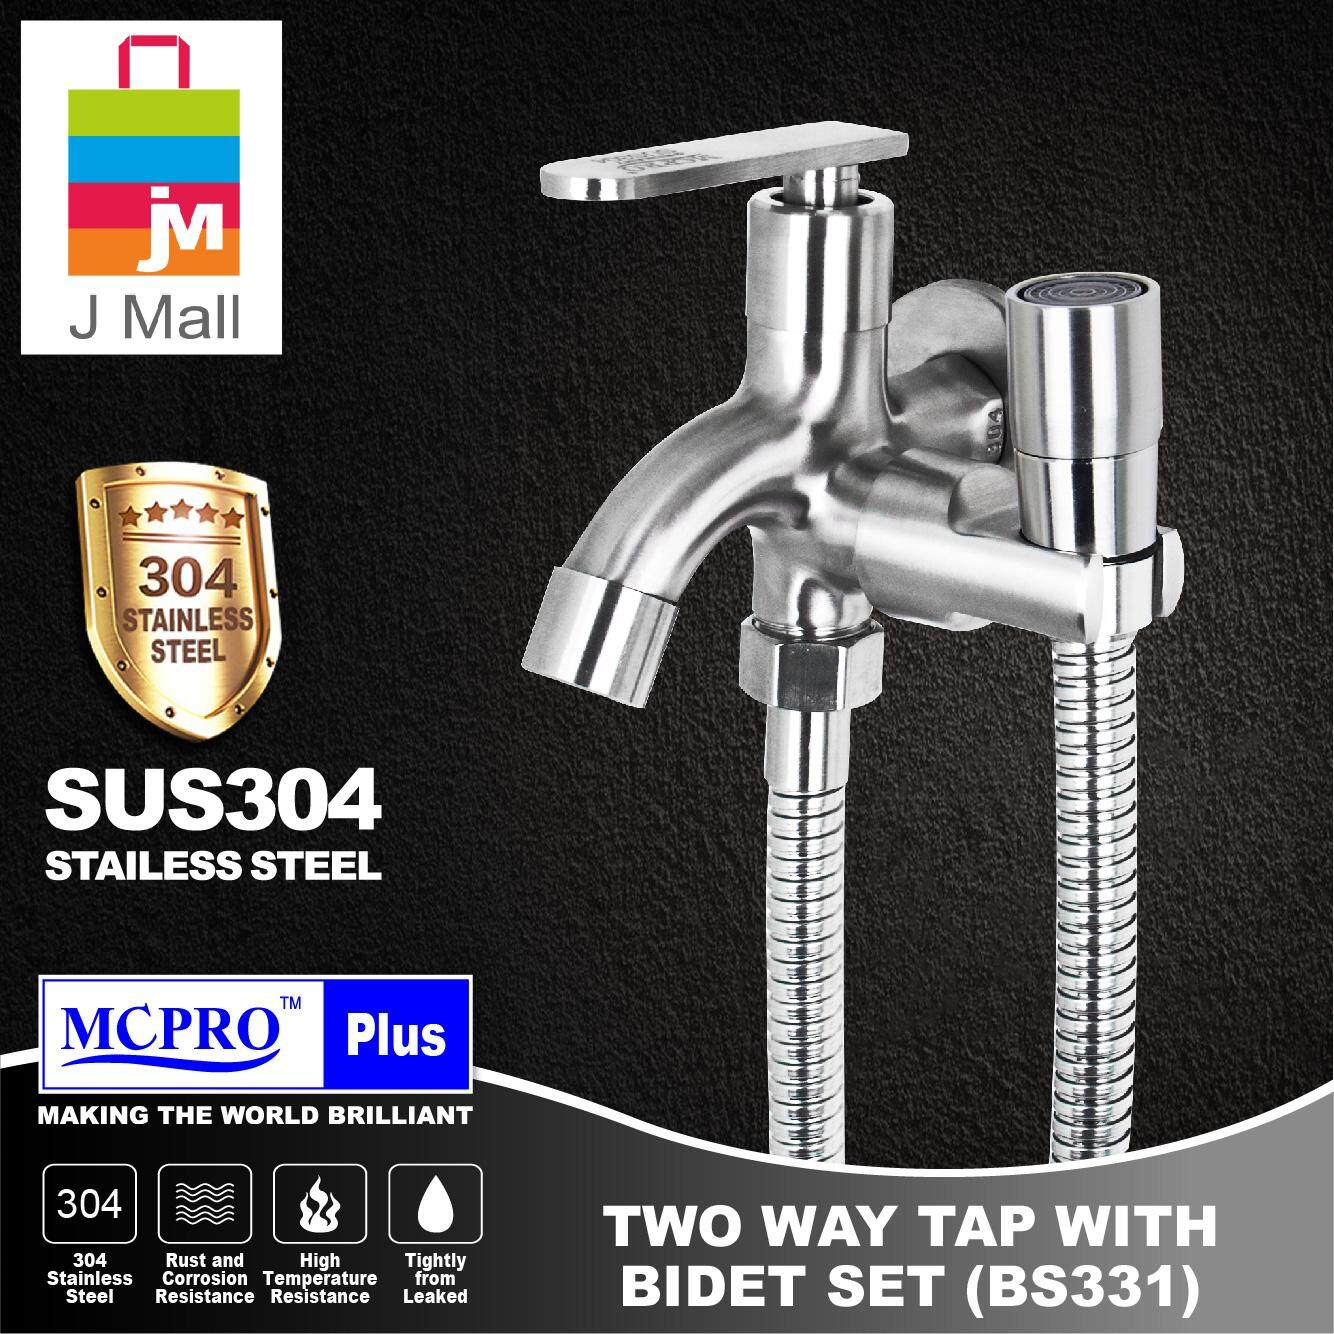 MCPRO Plus Stainless Steel SUS 304 Bathroom Faucet TWO WAY TAP bidet spray holder WITH BUBBLER HEAD AND FLEXIBLE HOSE SET (BS331)